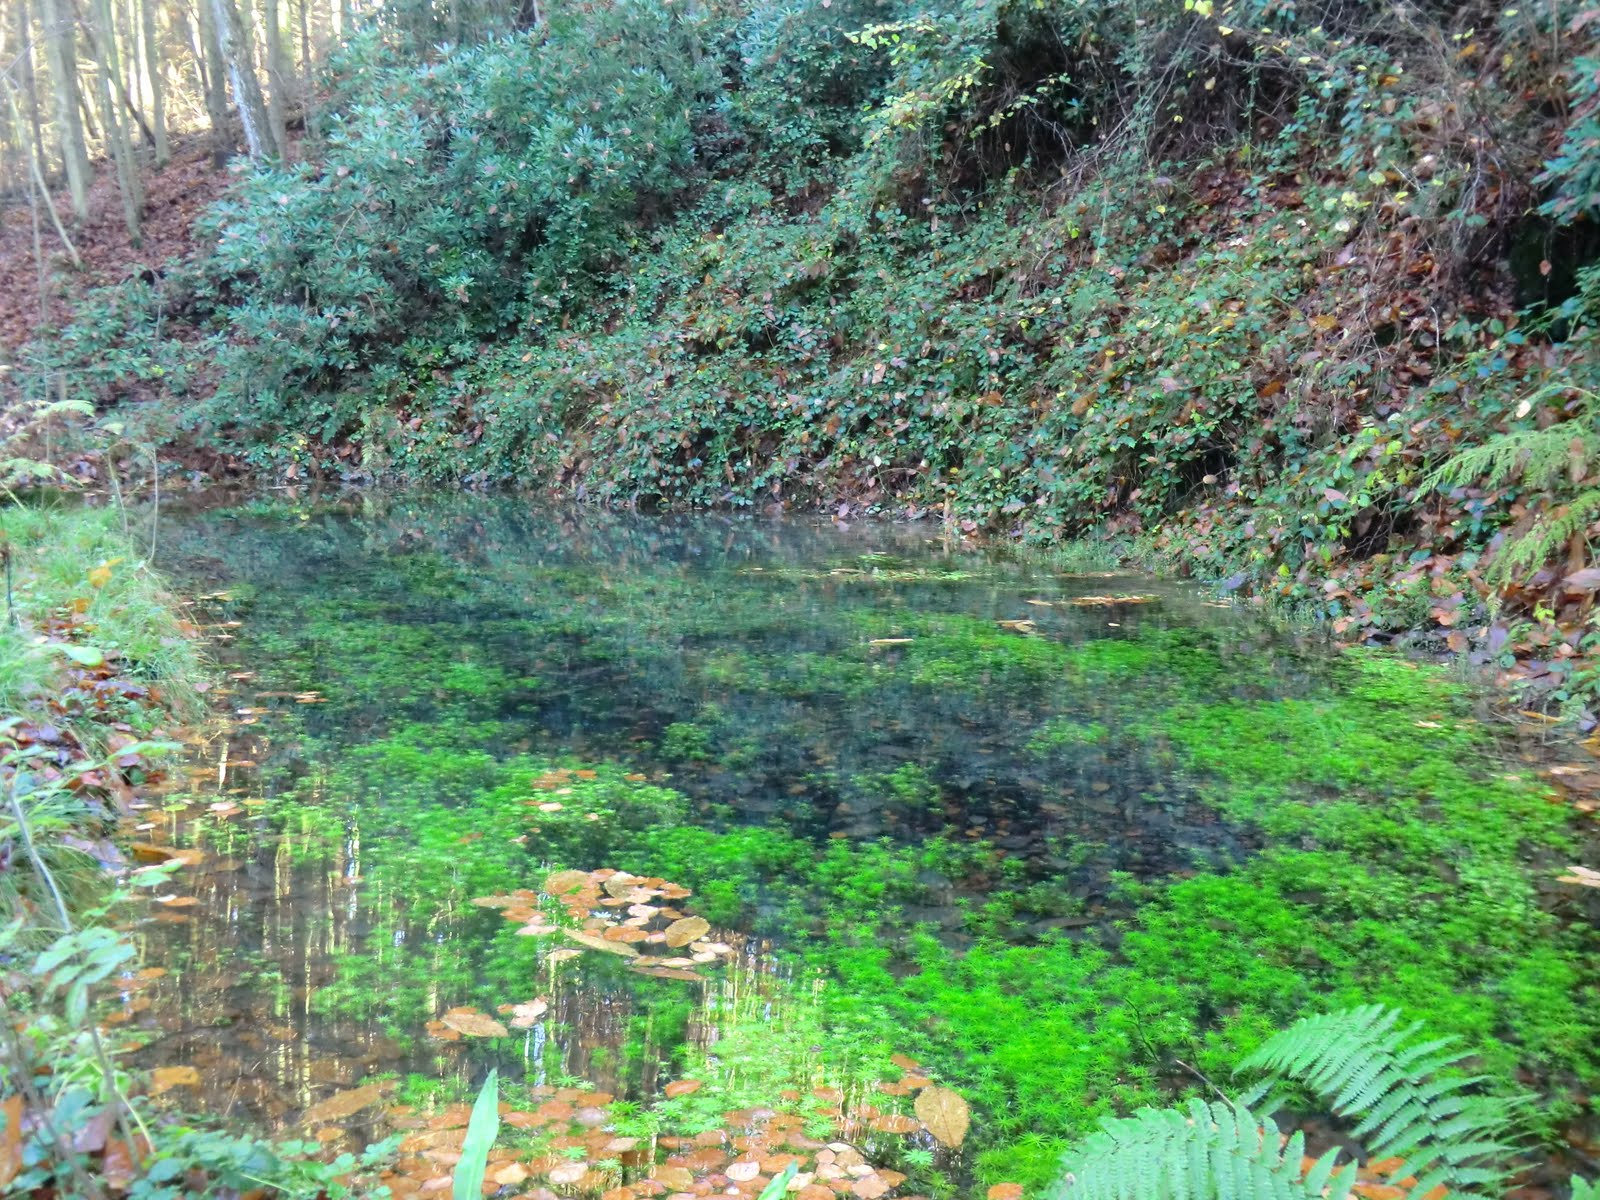 CIMG6212 Pool of spring water in Burrs Wood